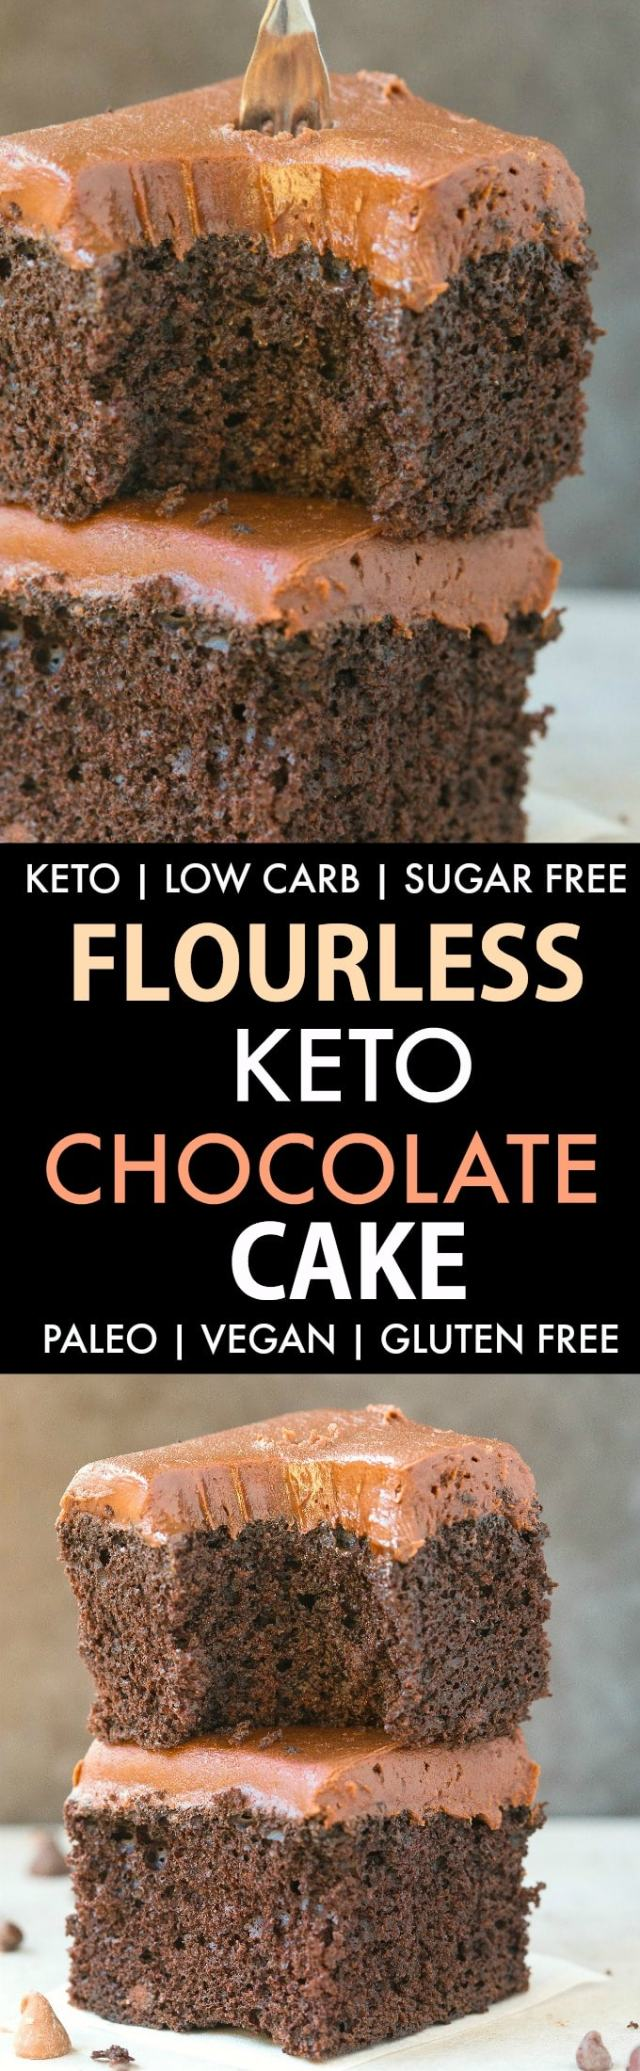 Flourless Keto Chocolate Cake in a collage